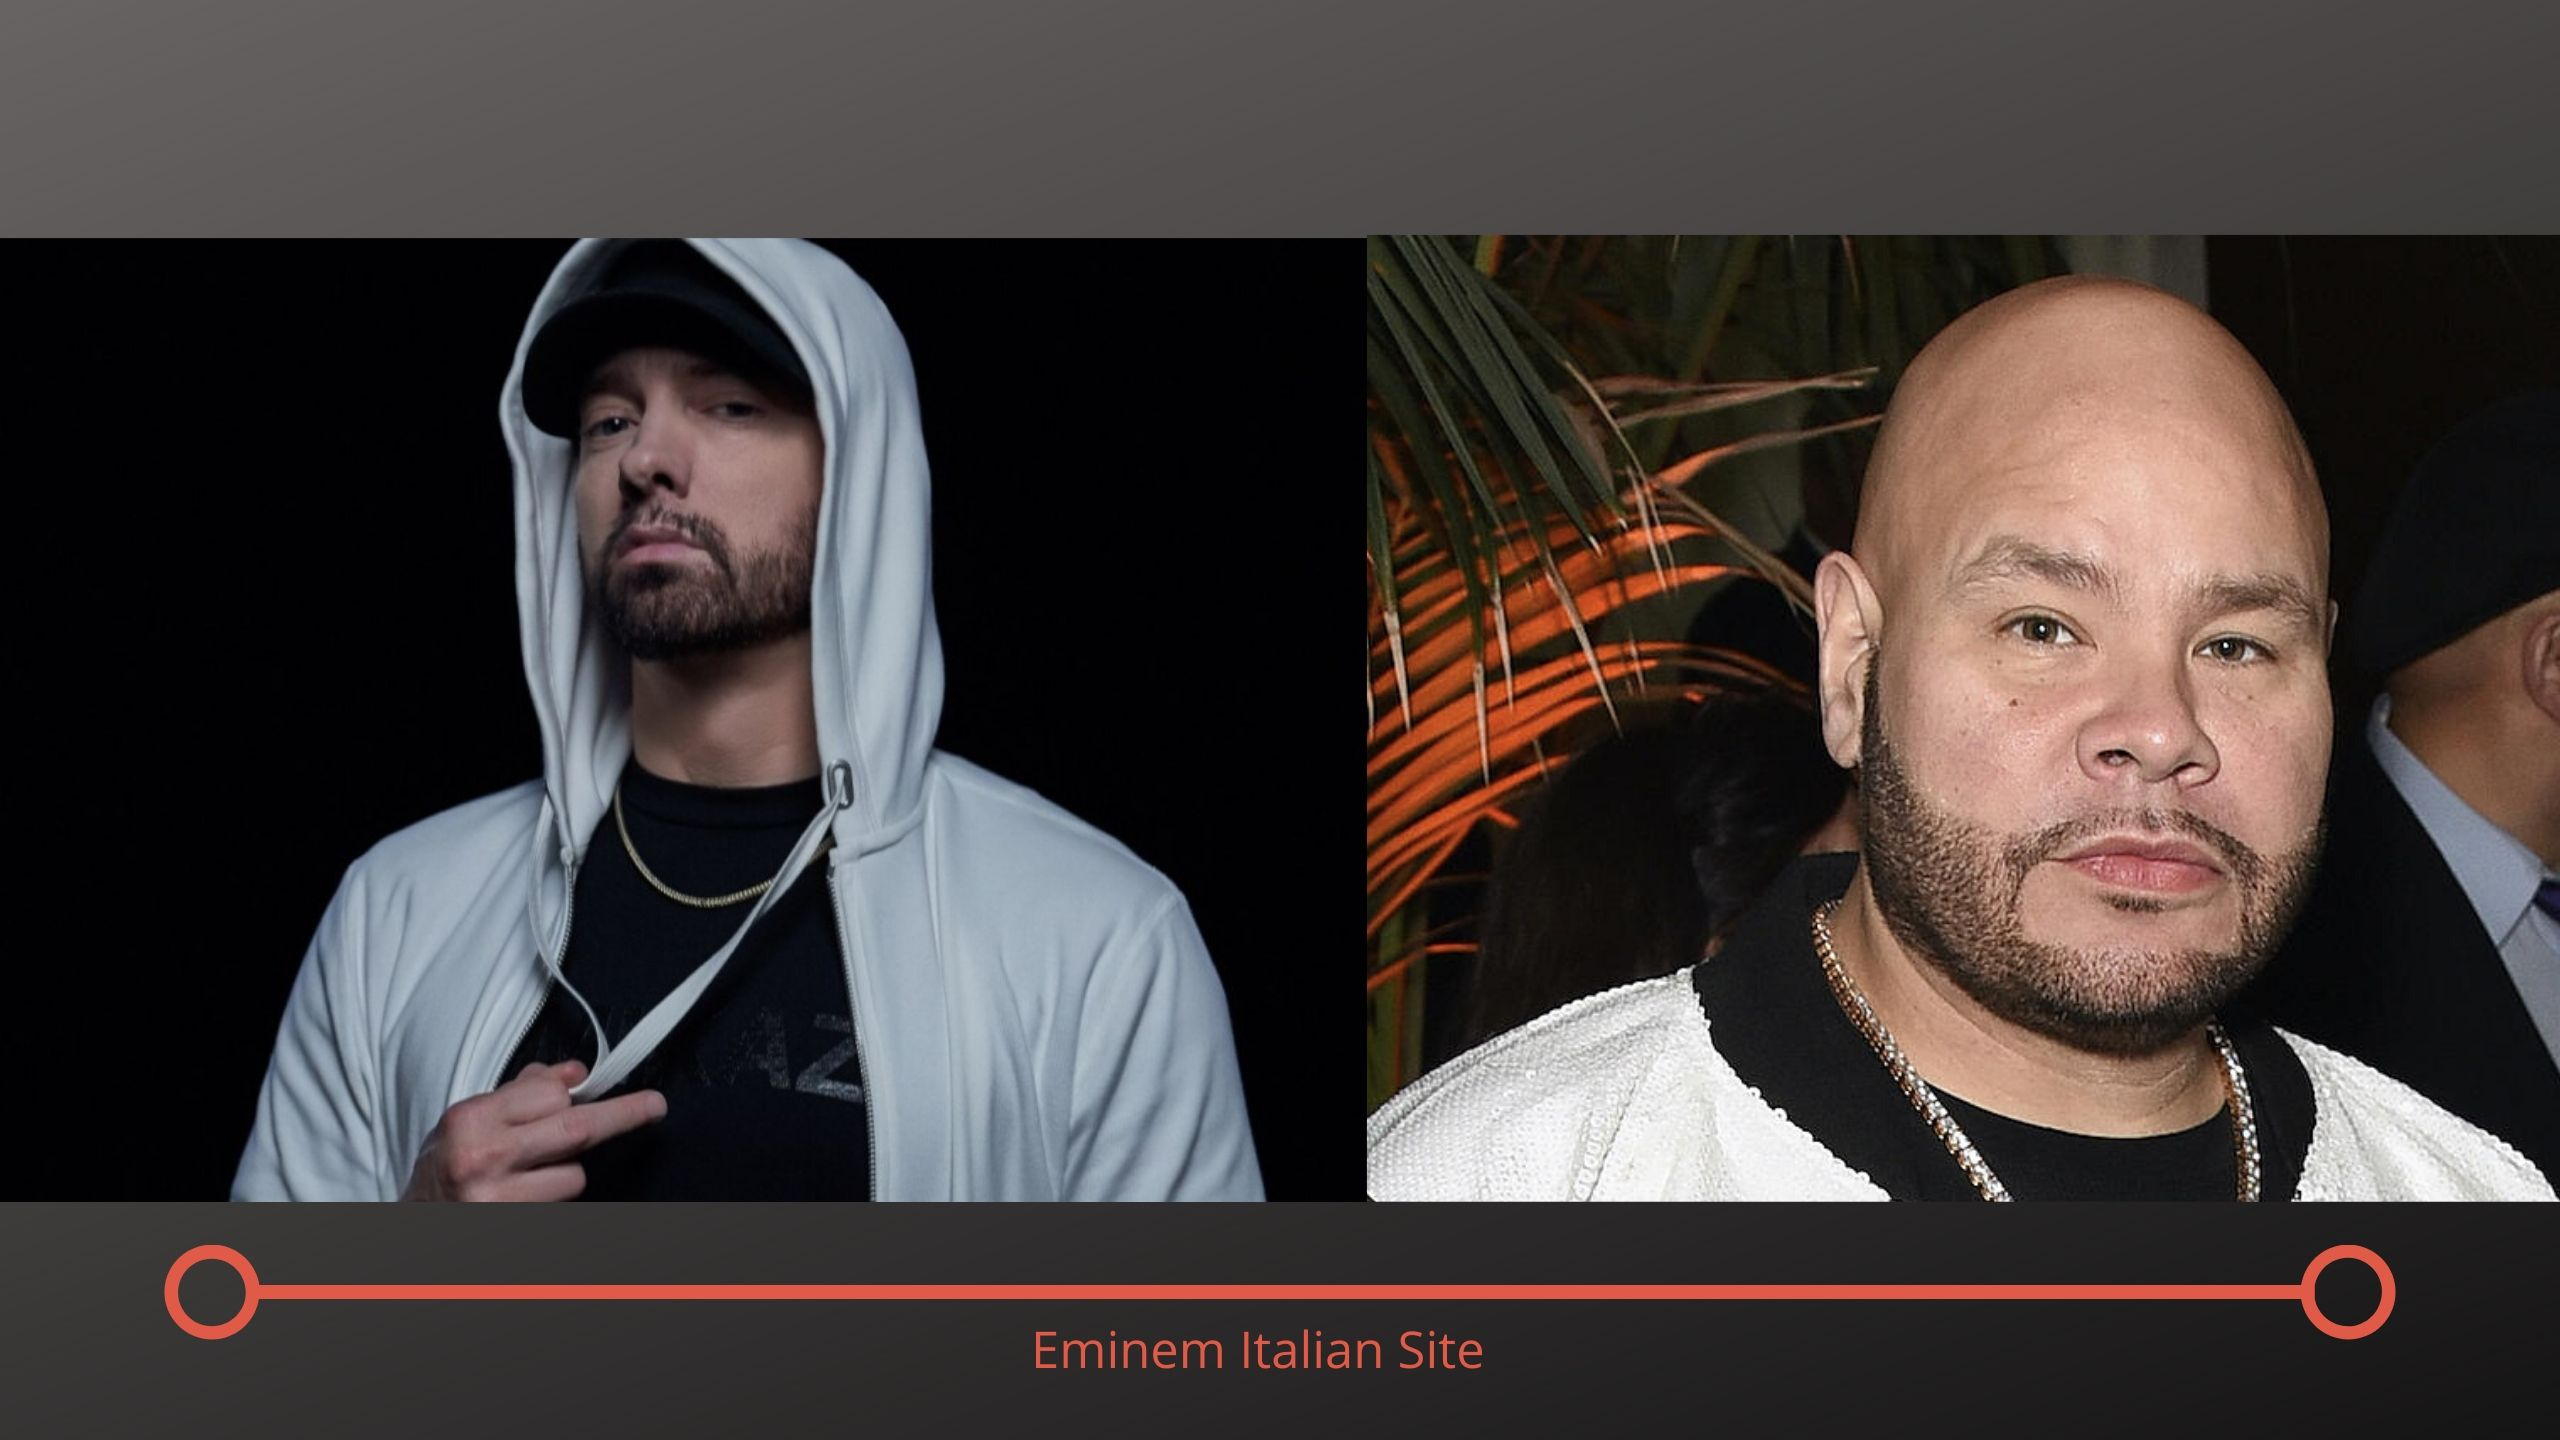 eminem fat joe, eminem lord above, eminem mary j.blige,